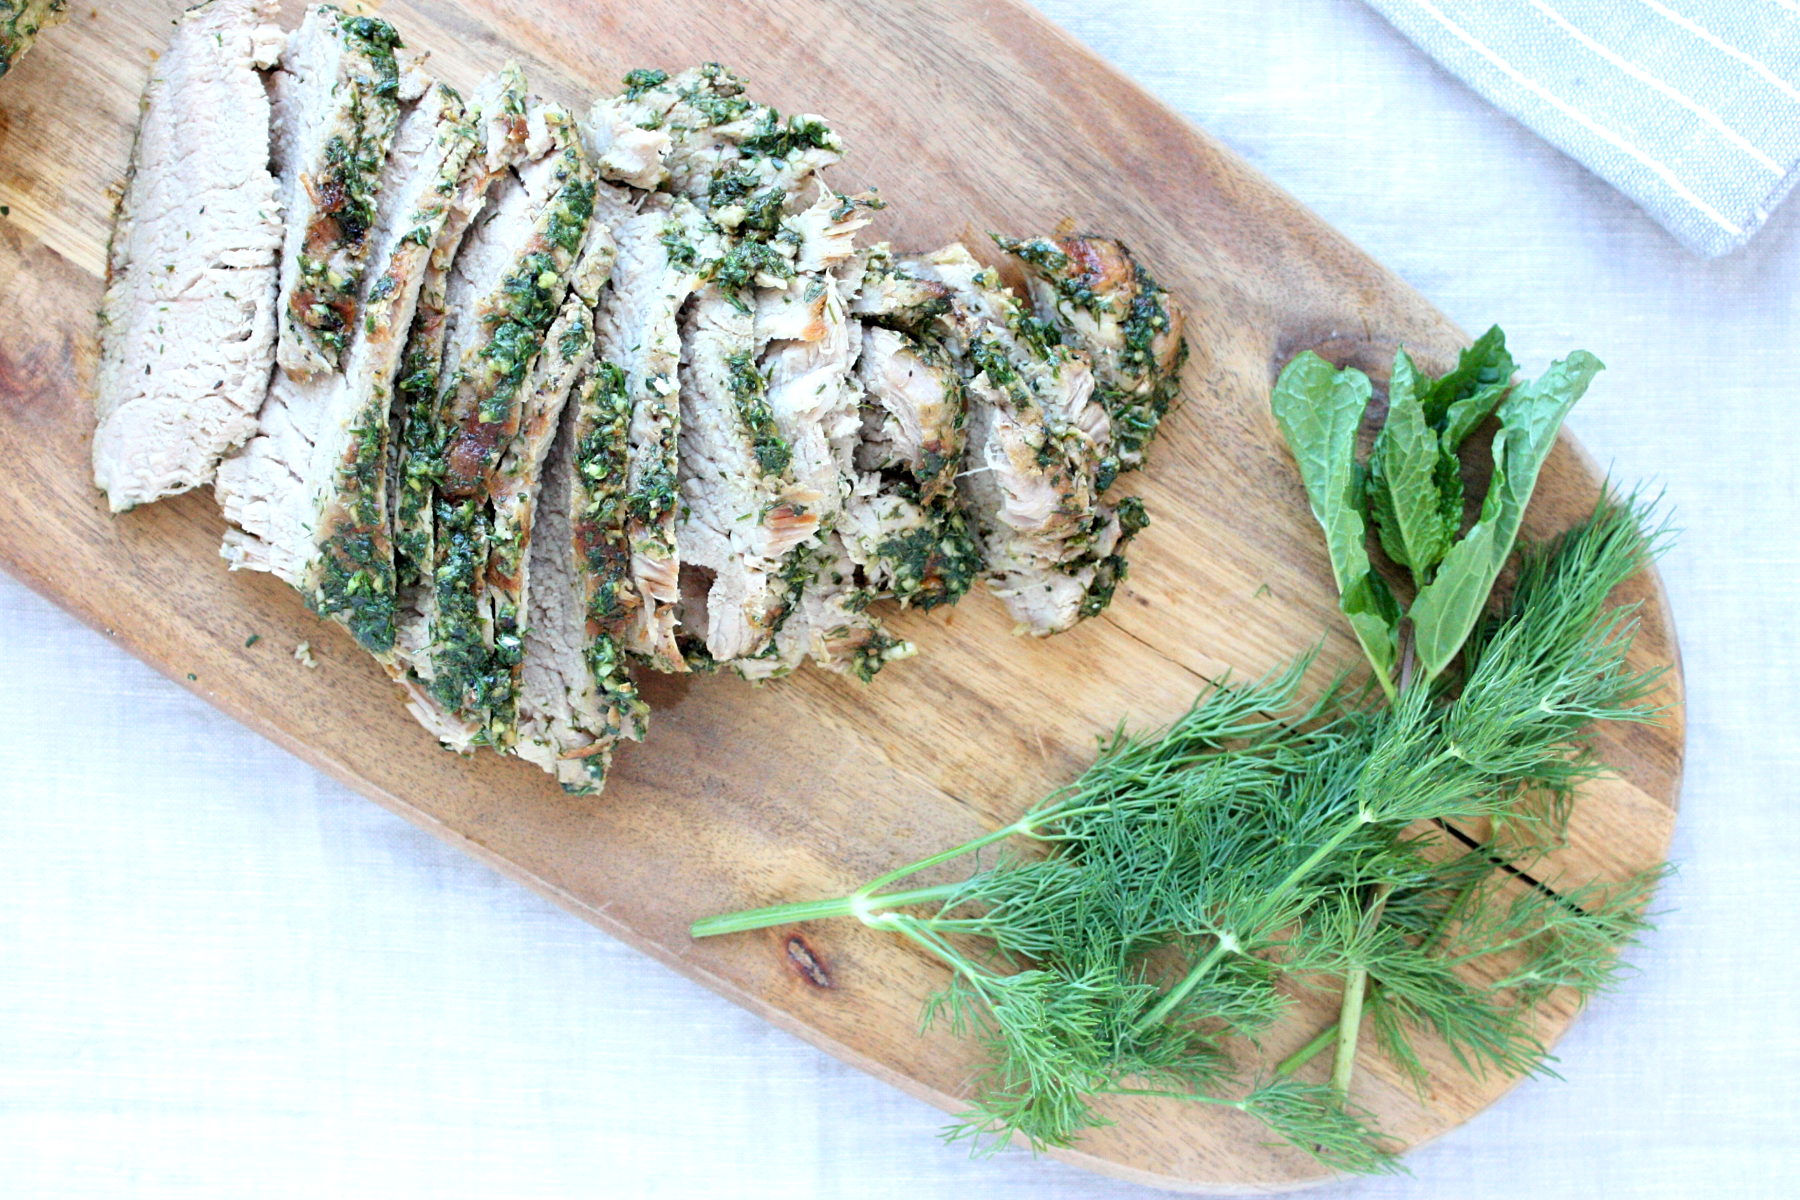 Mint and Dill Rubbed Pork Tenderloin